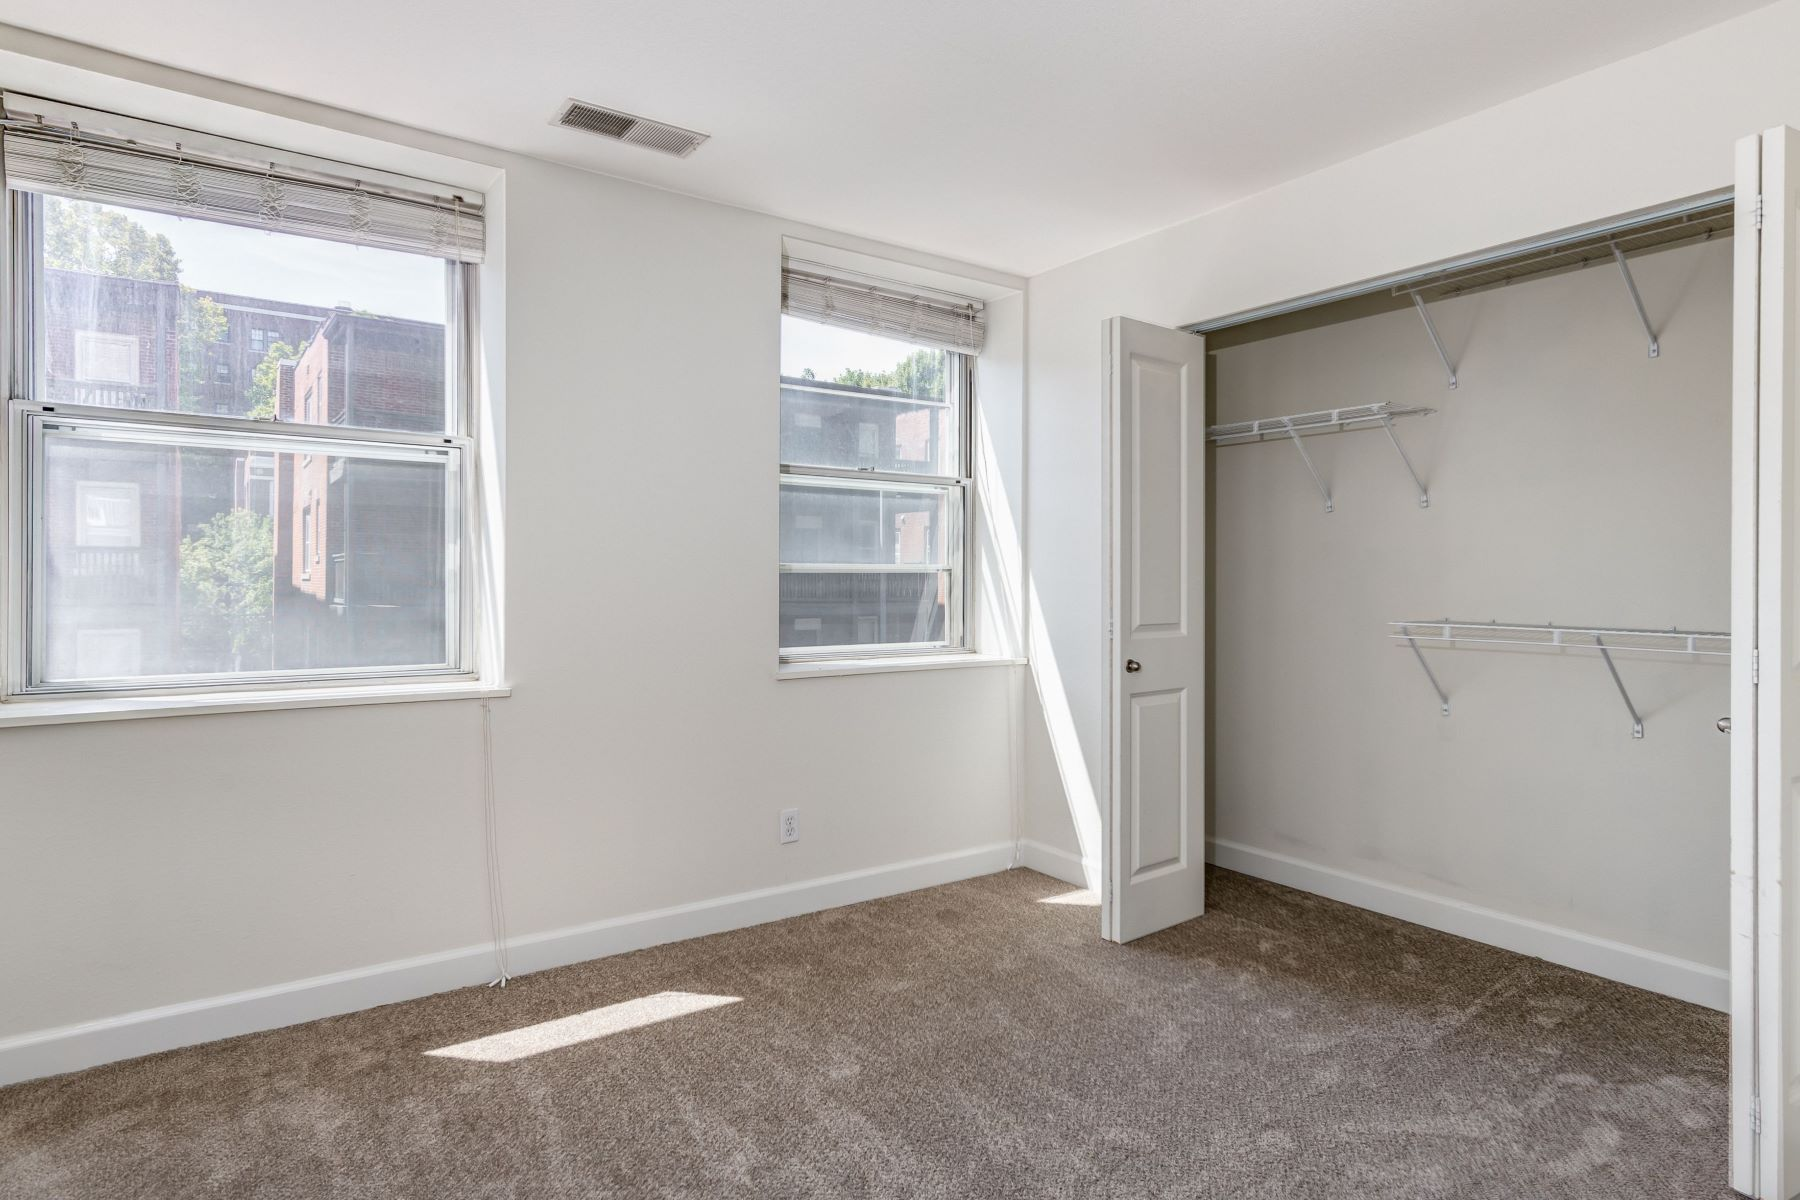 Additional photo for property listing at Peaceful City Living on Pershing Avenue 5330 Pershing Avenue #205 St. Louis, Missouri 63112 United States